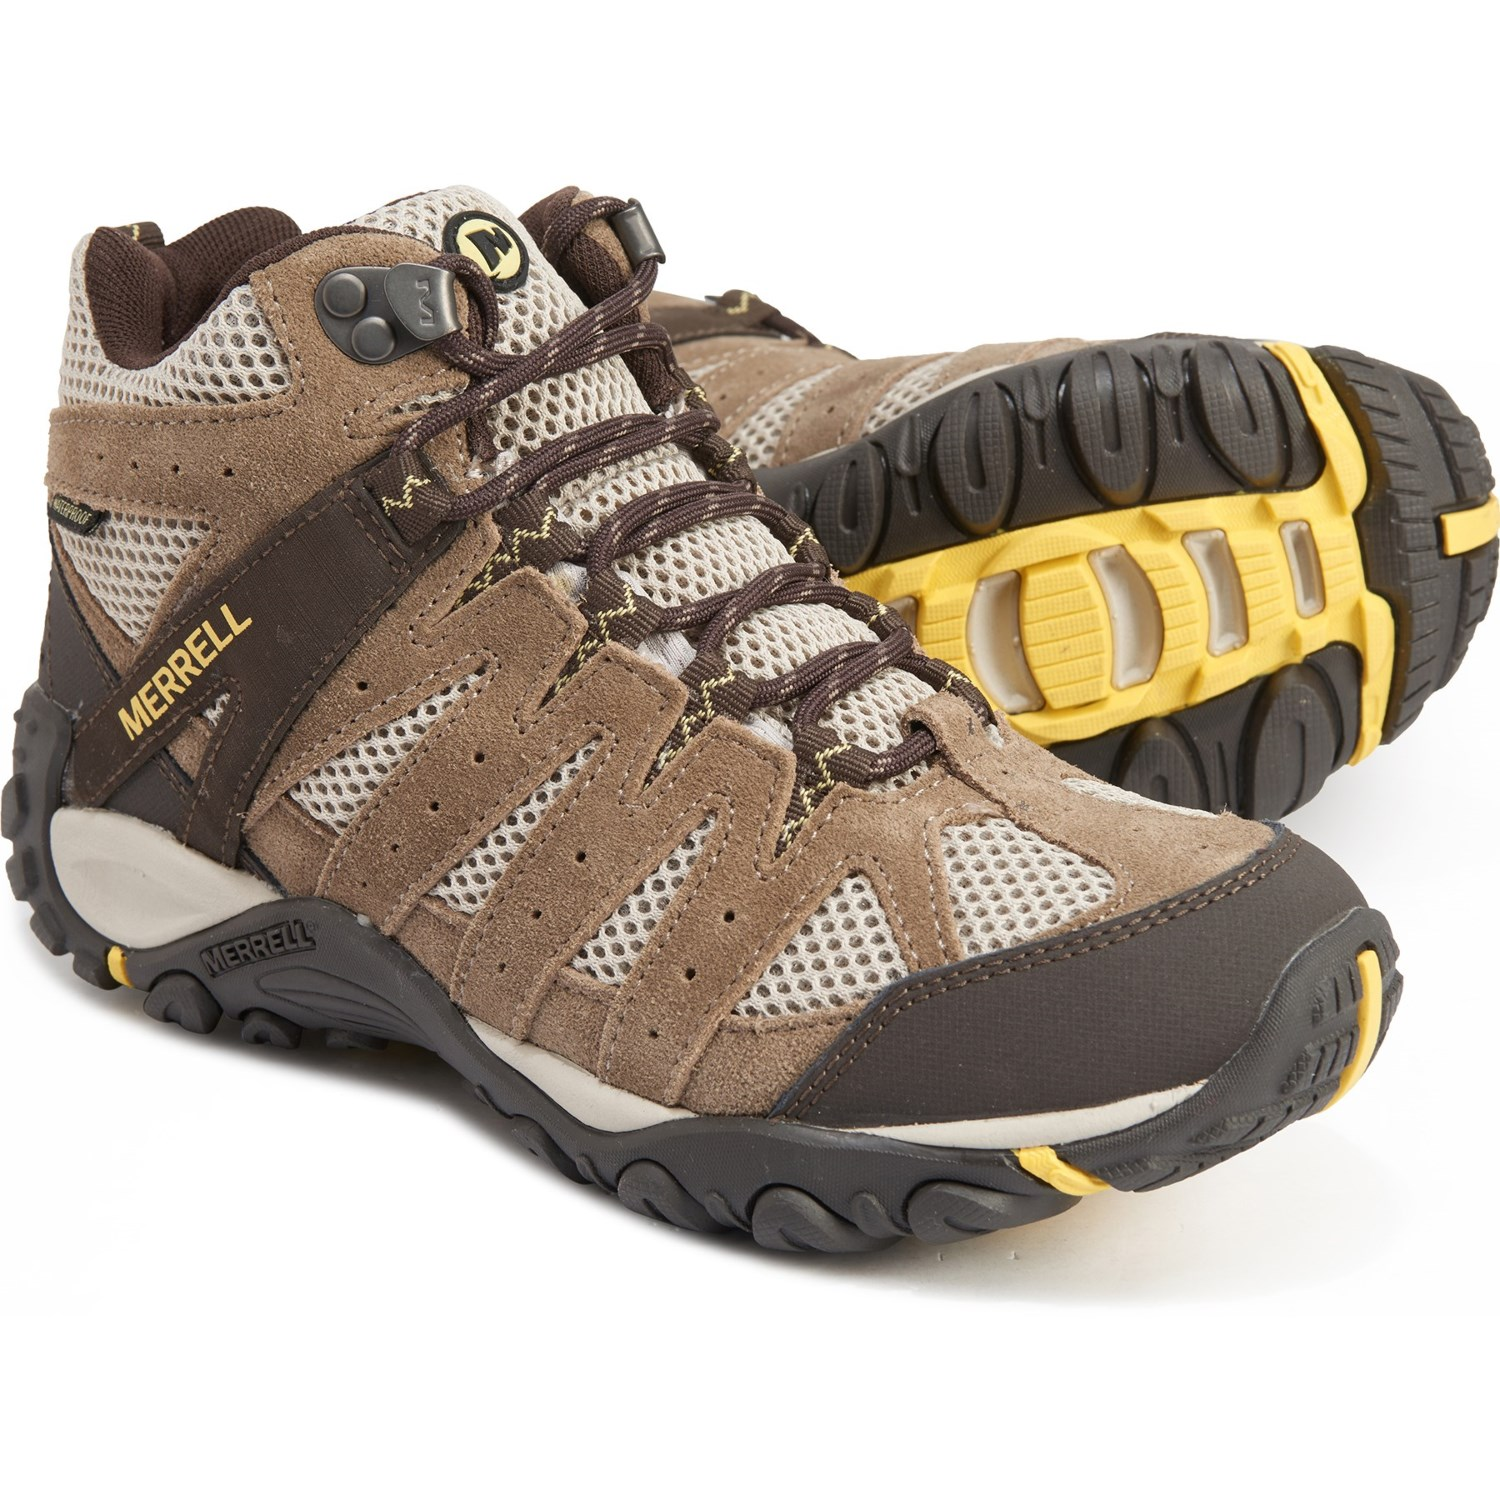 Merrell Accentor 2 Mid Vent Hiking